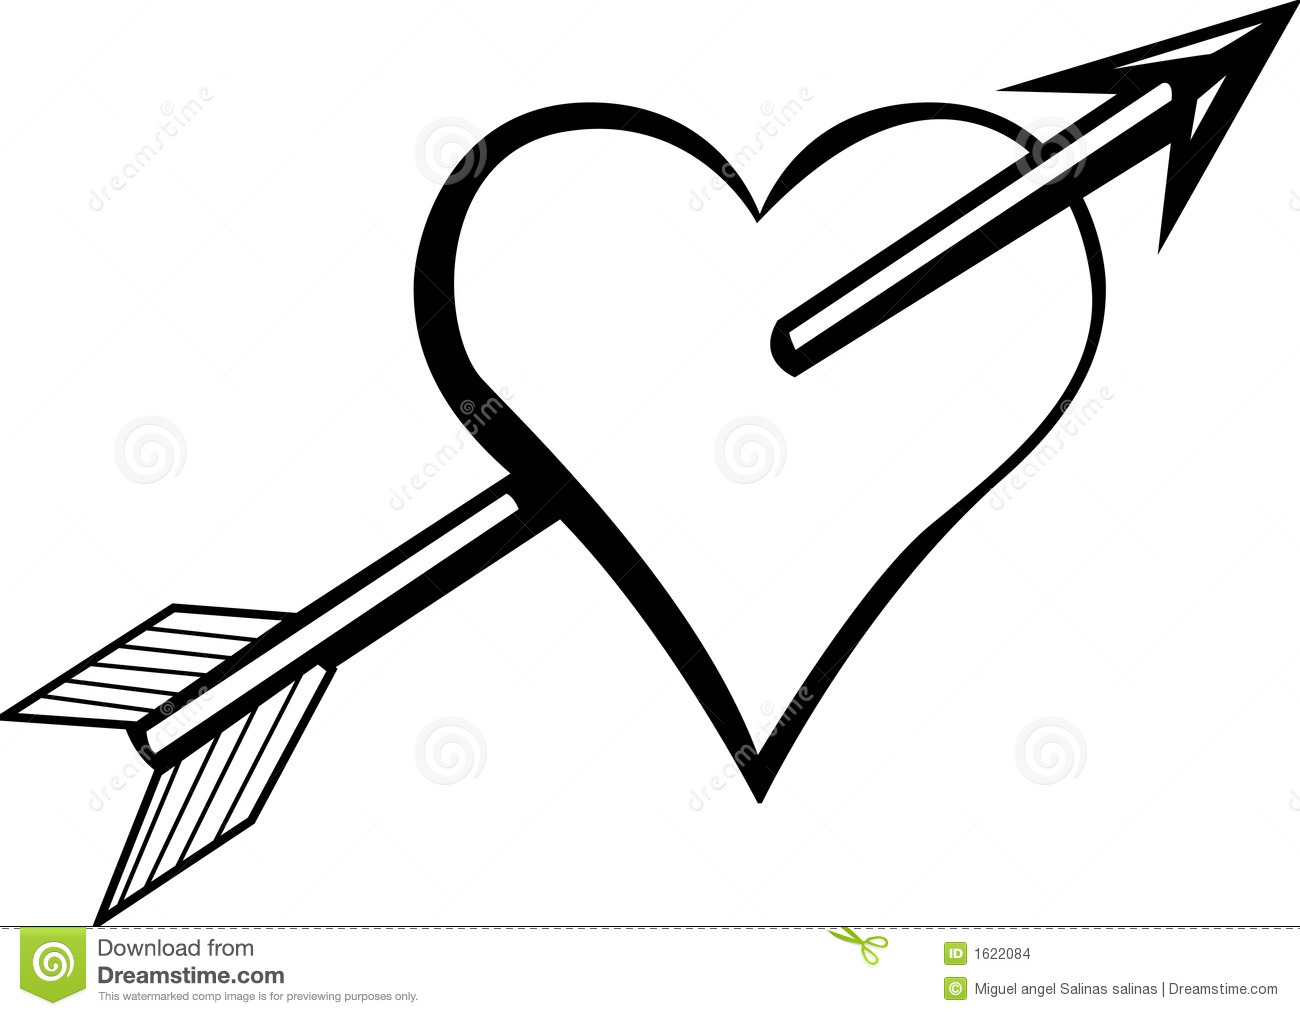 It is a graphic of Agile Hearts With Bows